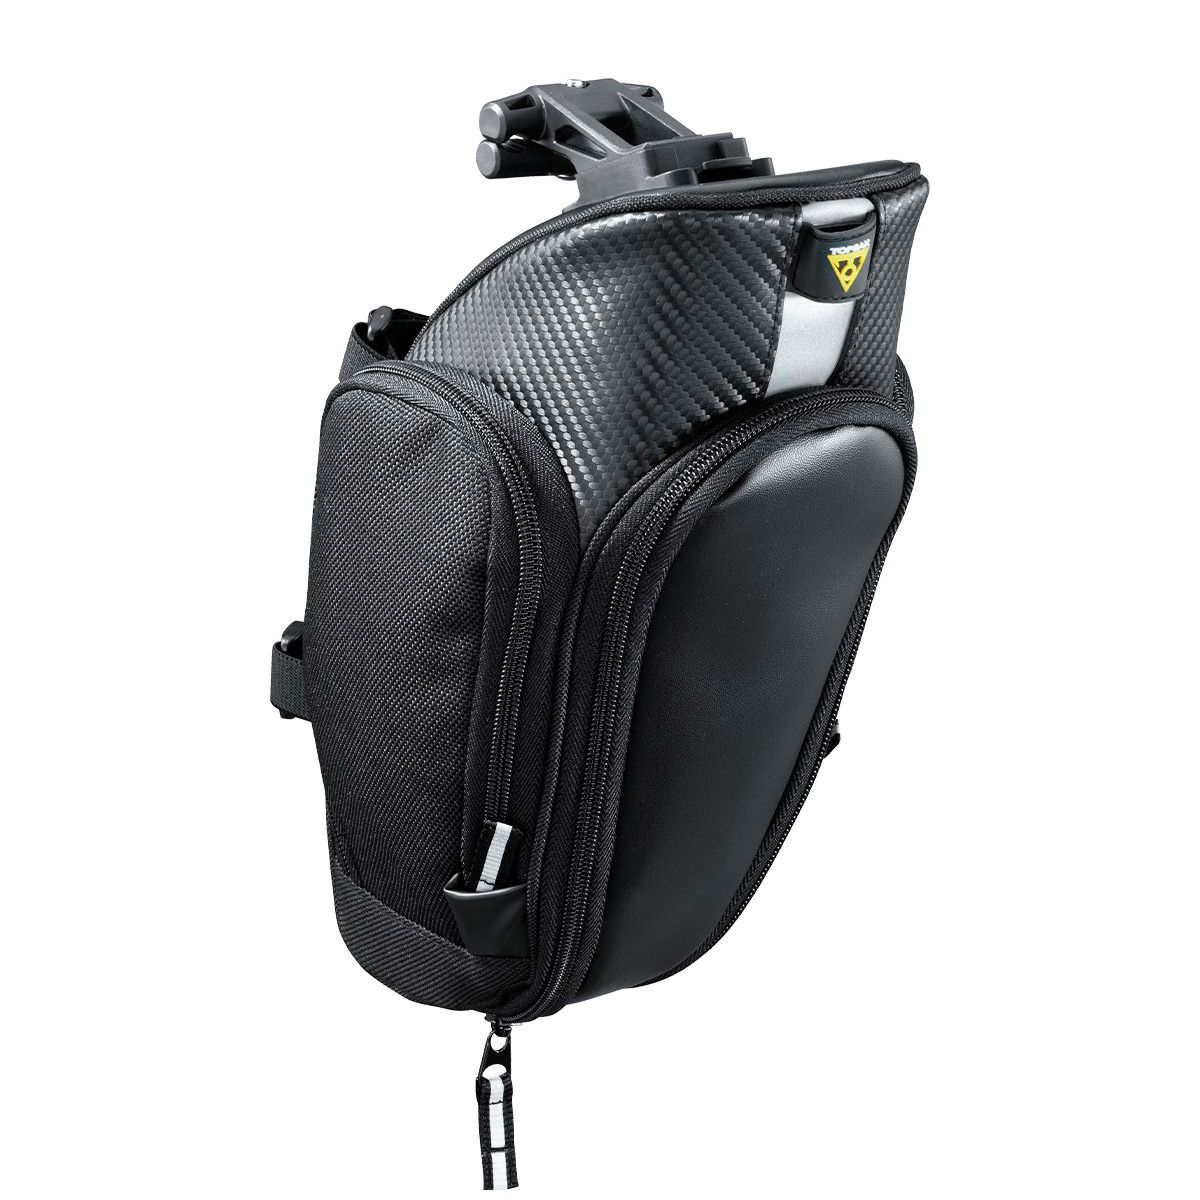 TOPEAK MondoPack XL saddle bag